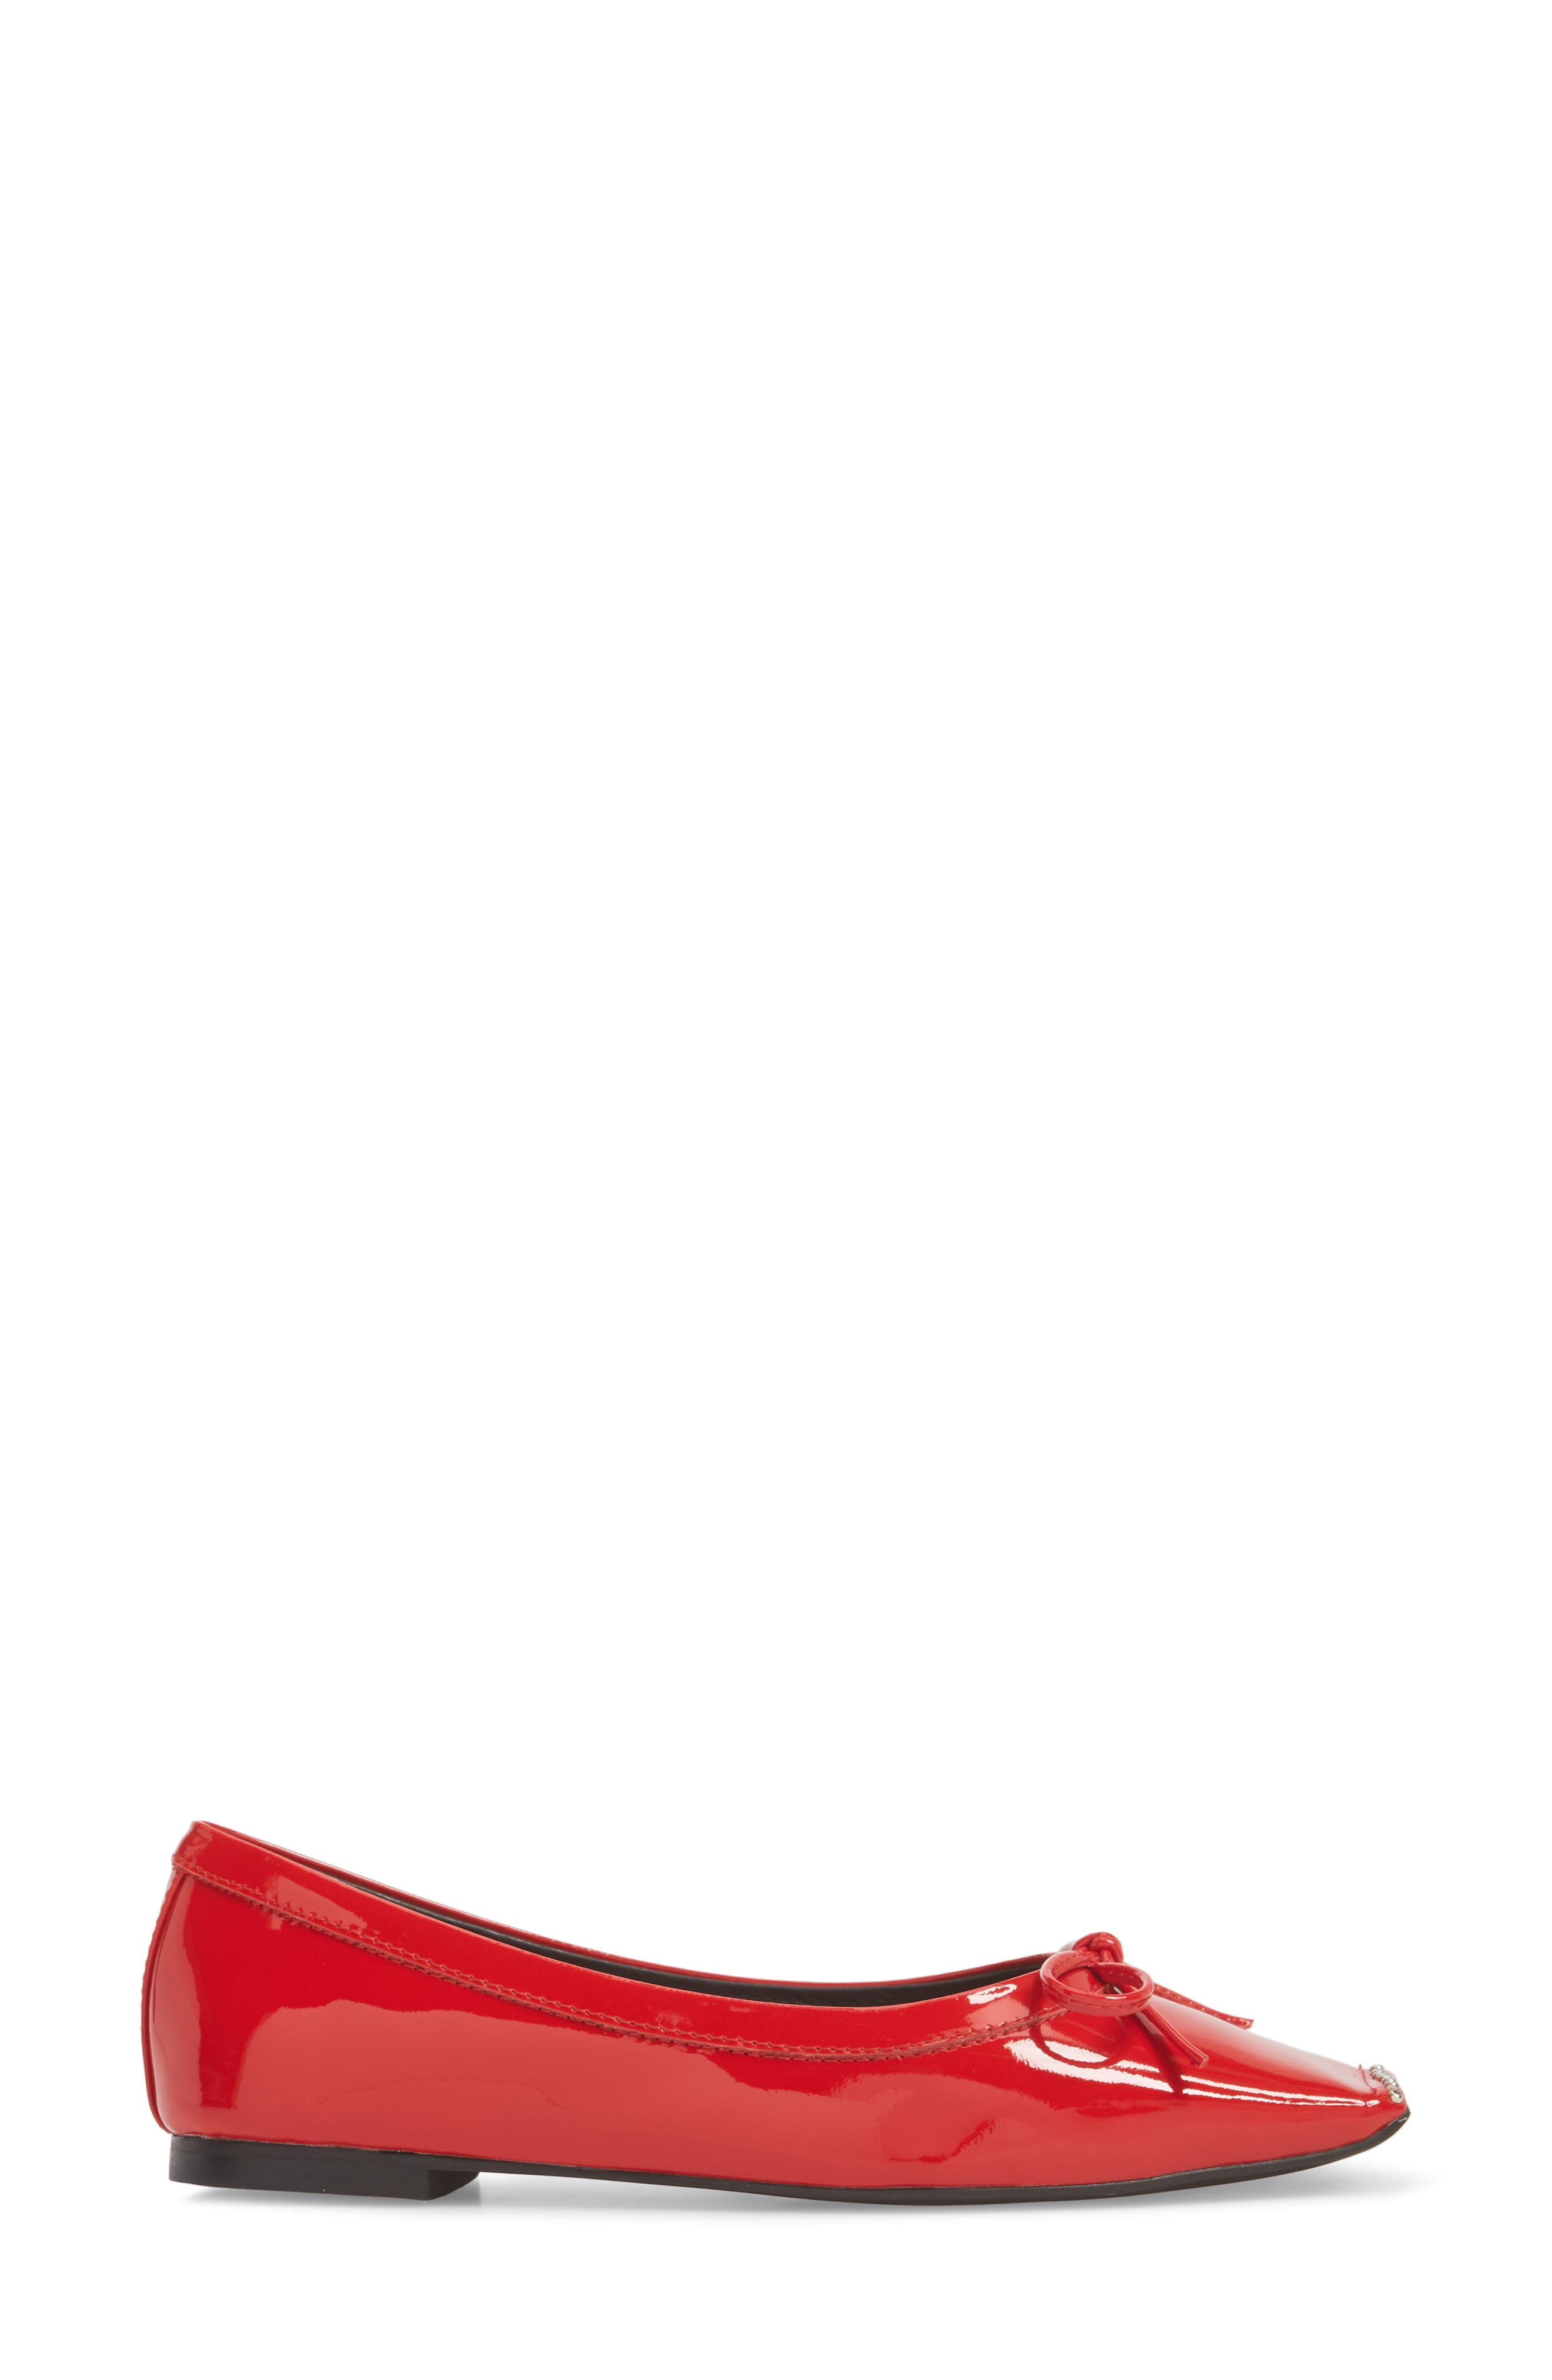 Achira Flat,                             Alternate thumbnail 3, color,                             Red Patent Leather